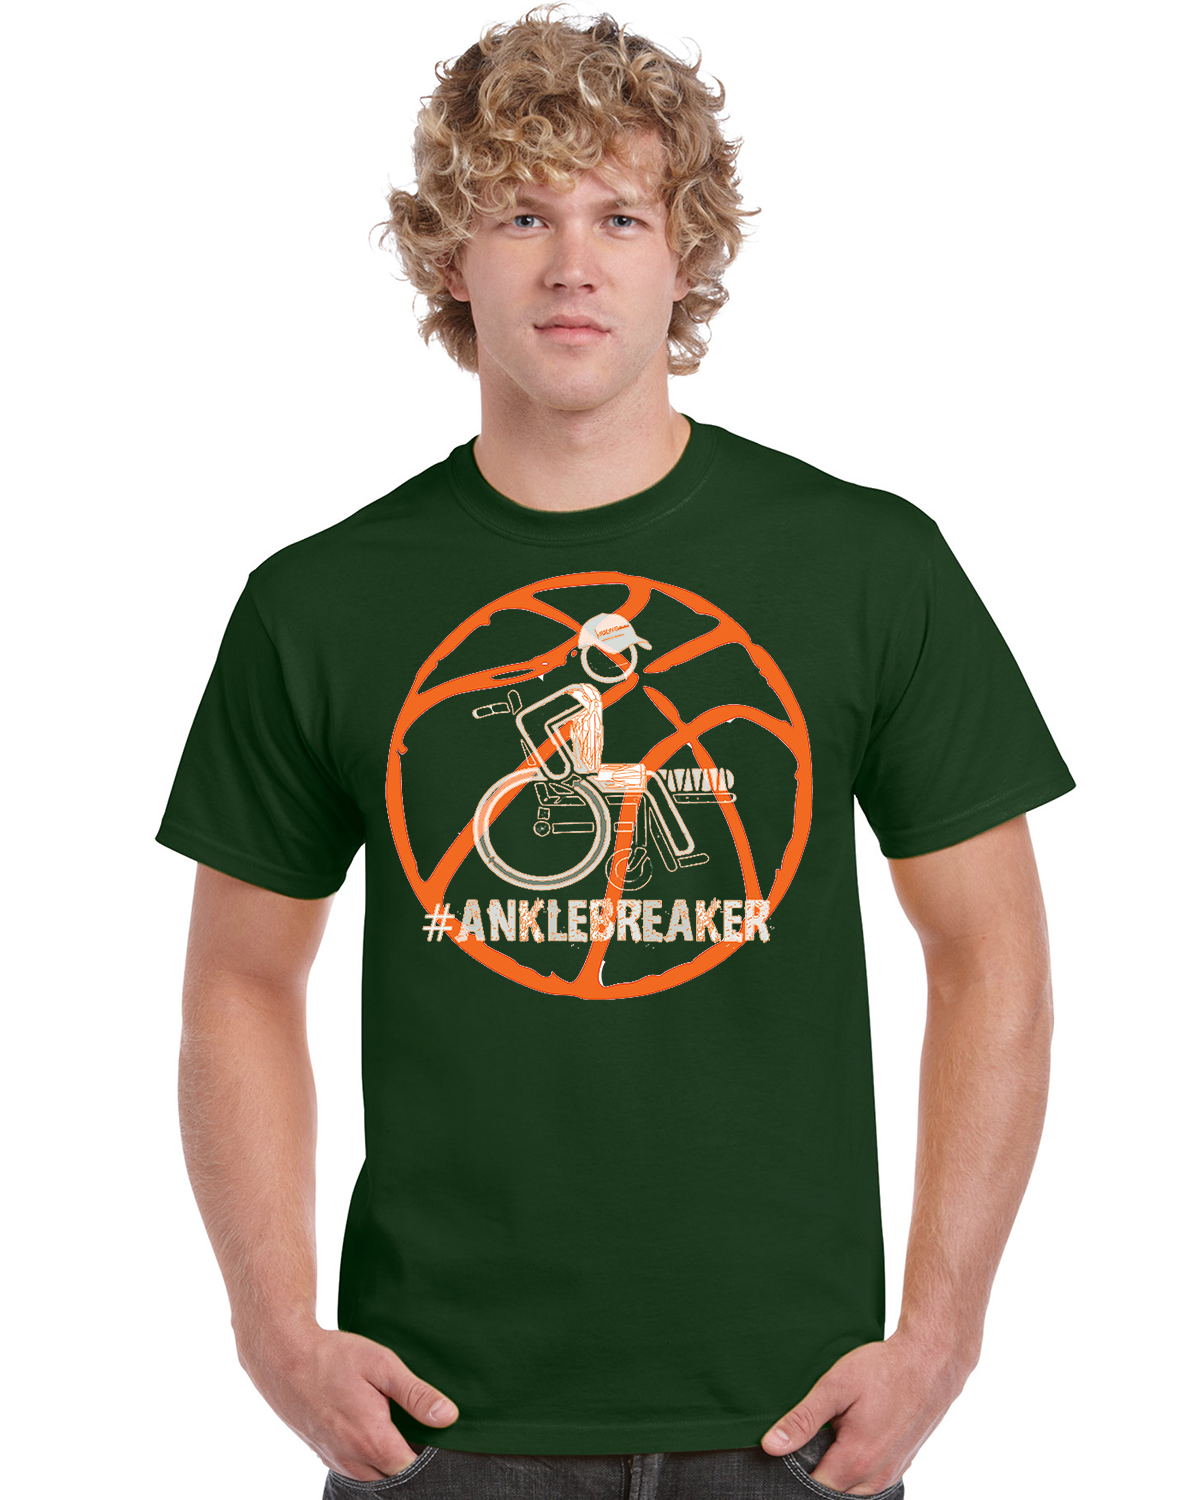 Men's #Anklebreaker Basketball Ultra Cotton Tee